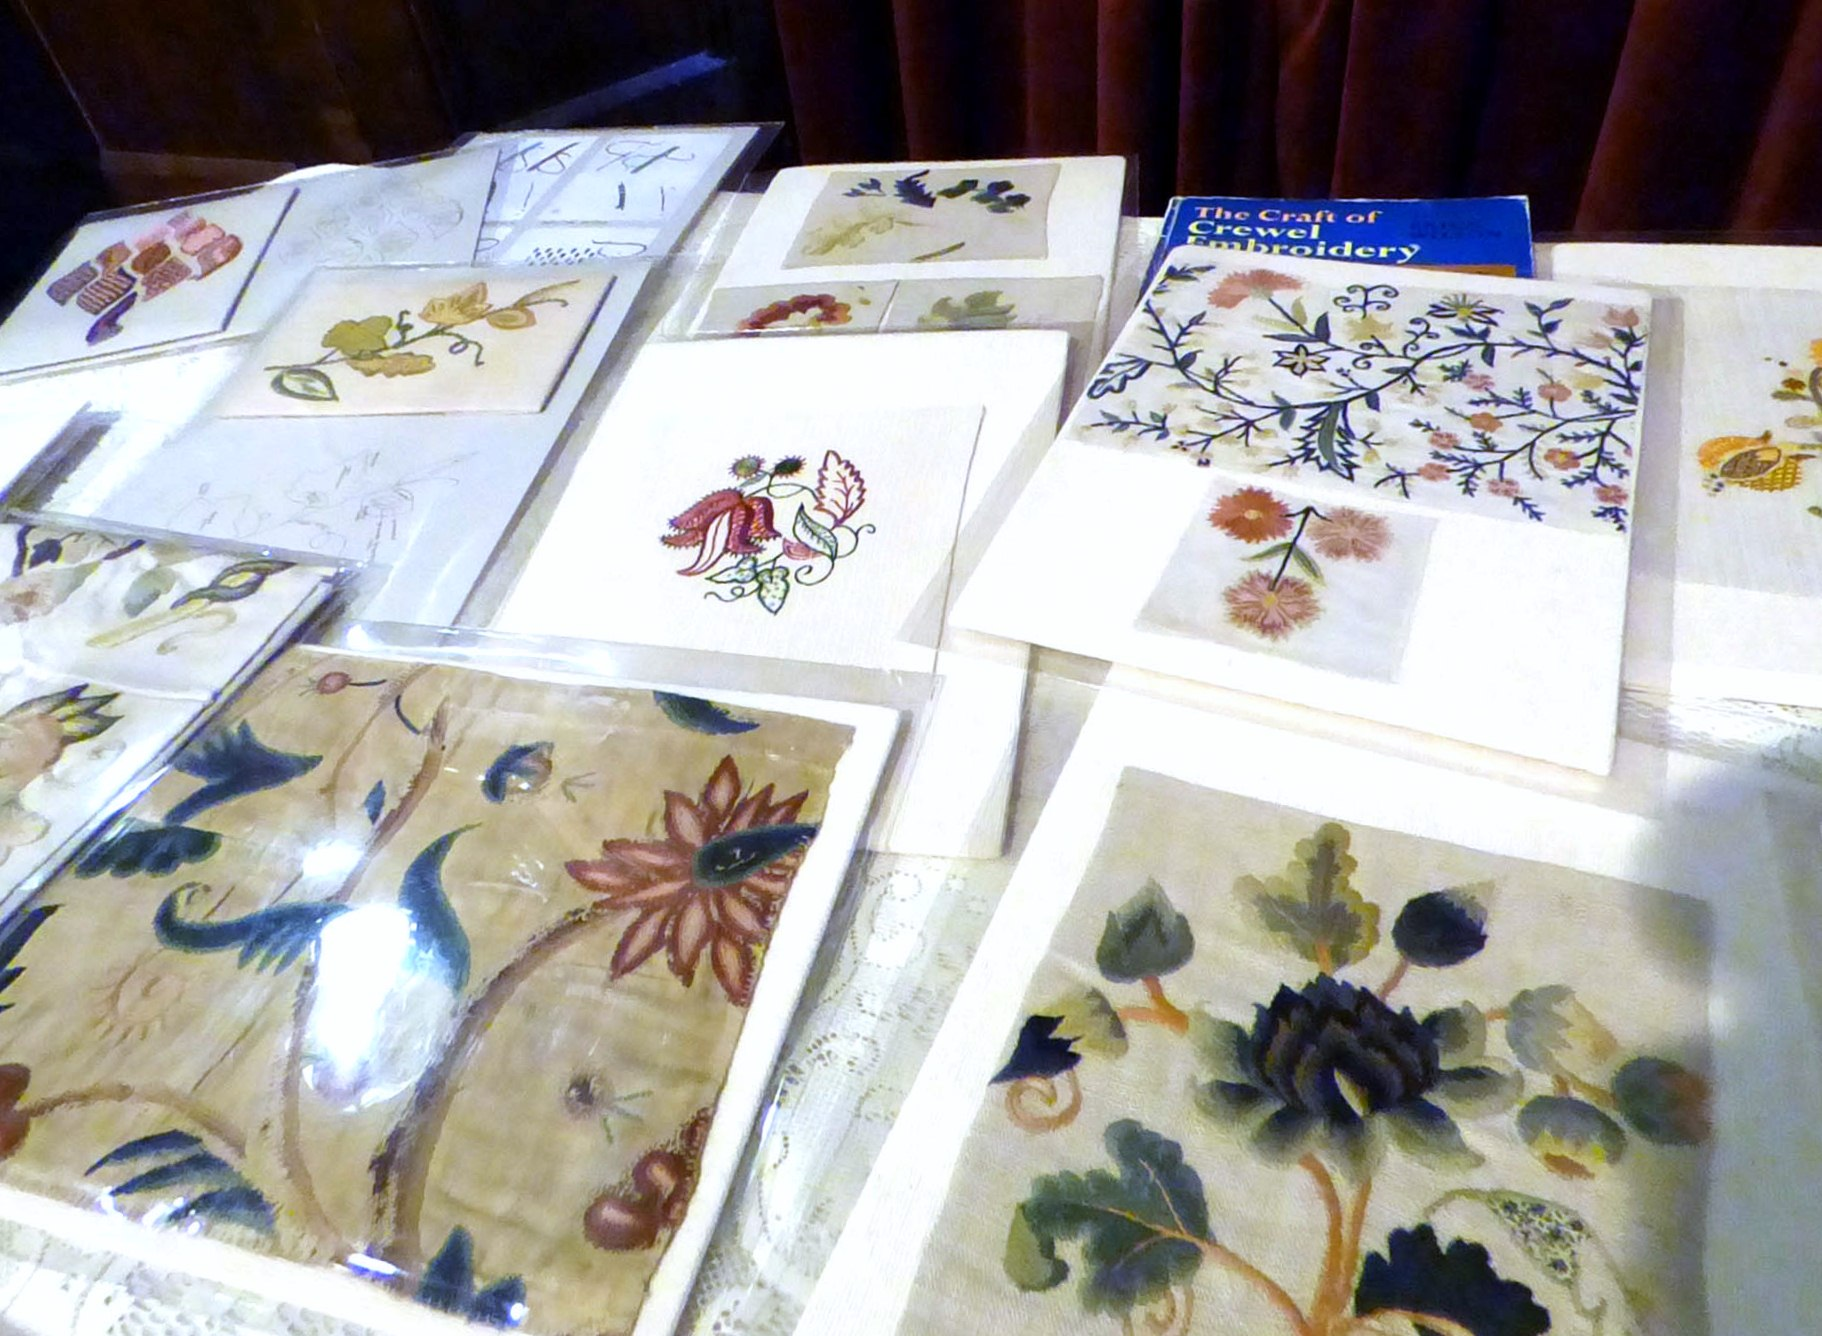 the crewelwork folio from EG HQ on display at MEG Christmas Party 2017